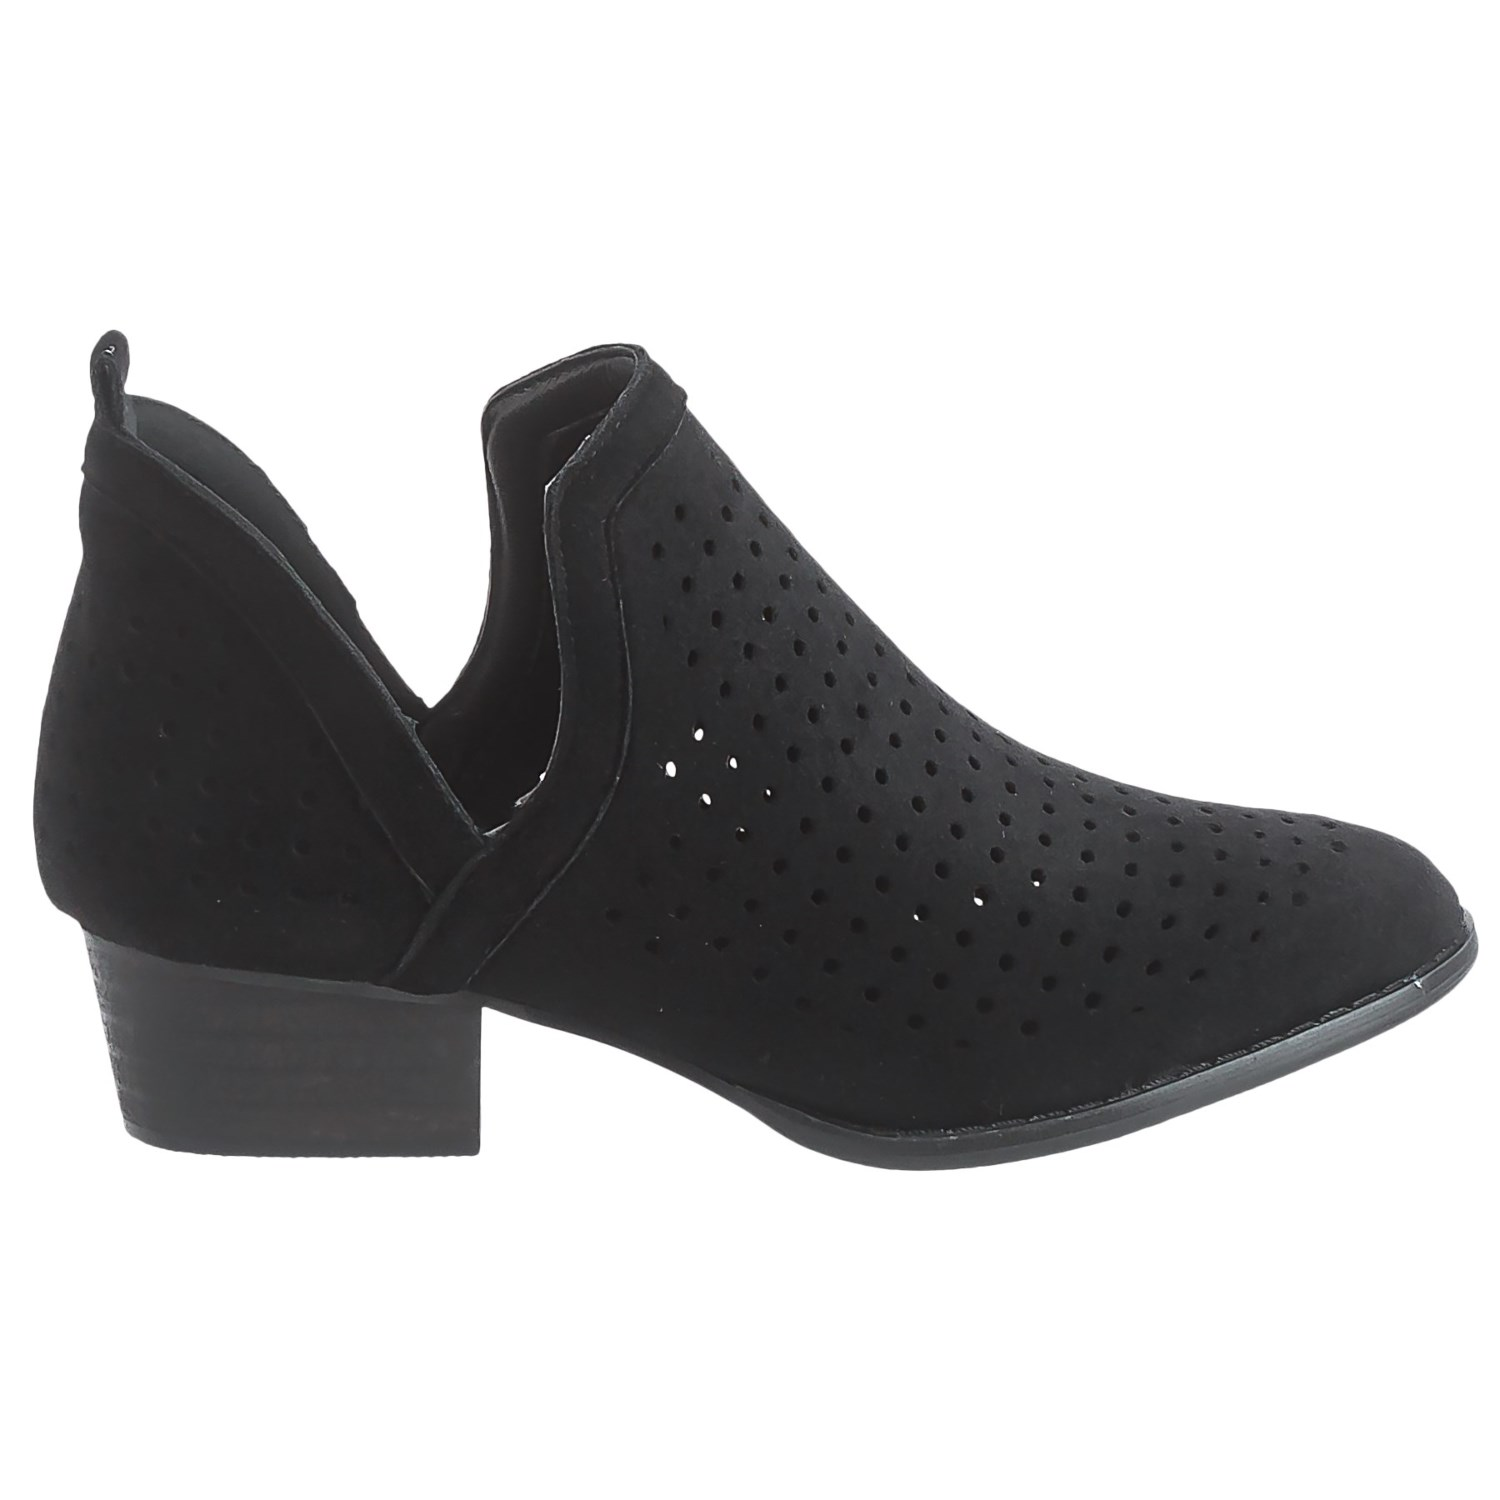 Yoki Paladino Ankle Boots (For Women) - Save 50%